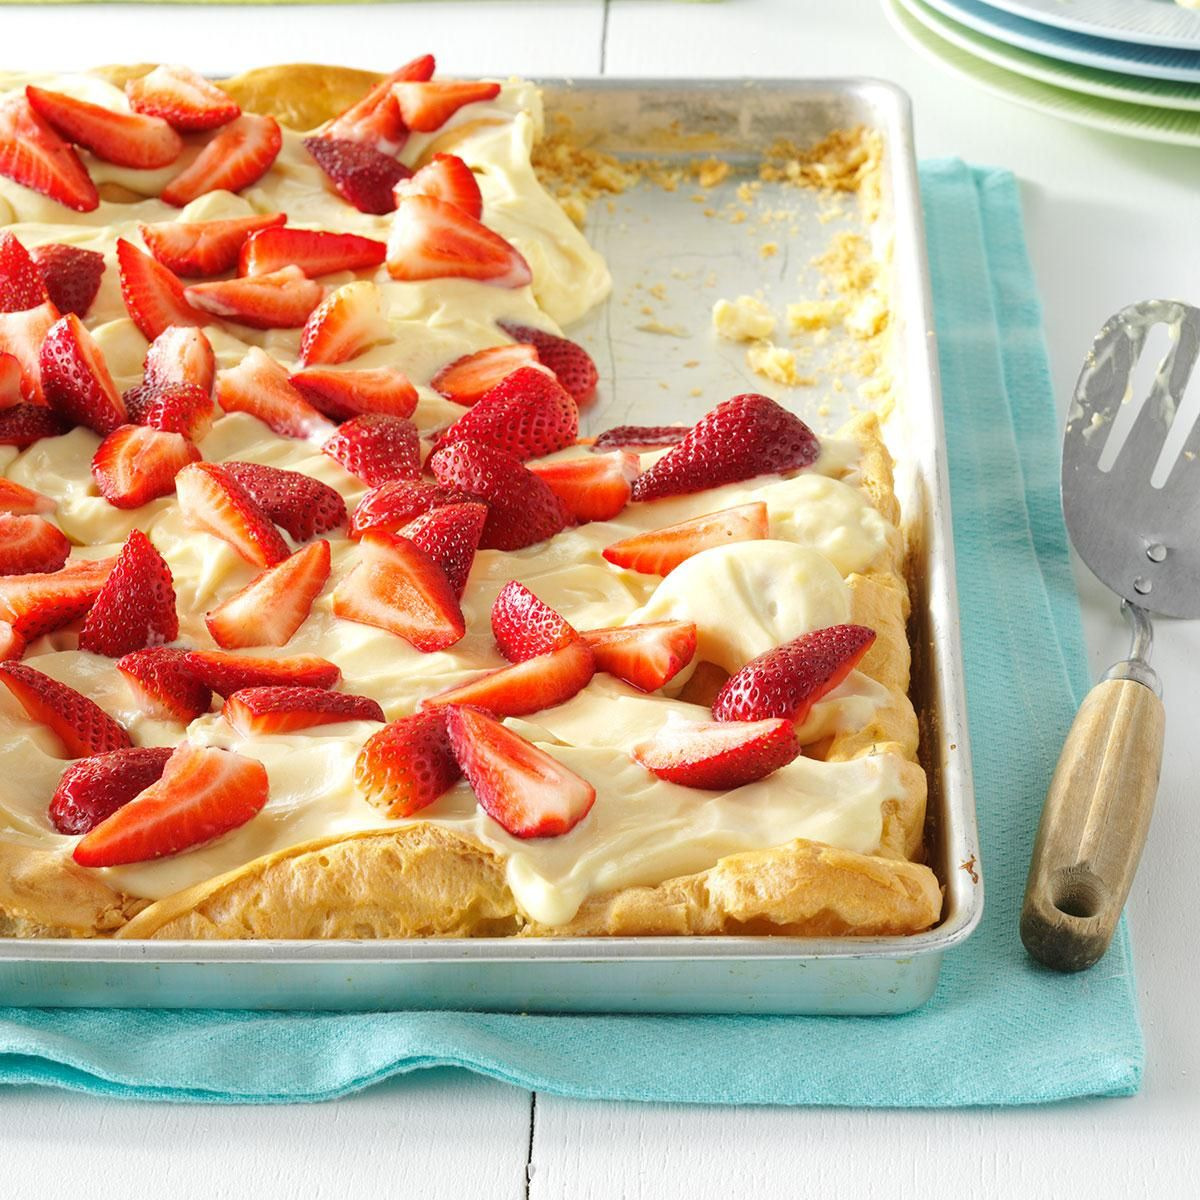 Strawberry Bliss Recipe -An easy-to-make puff pastry crust is topped with a soft-set pudding layer with a hint of strawberry flavor. Because this dessert needs to chill for at least an hour, it's your new go-to for a make-ahead brunch. —Candace Richter, Stevens Point, Wisconsin